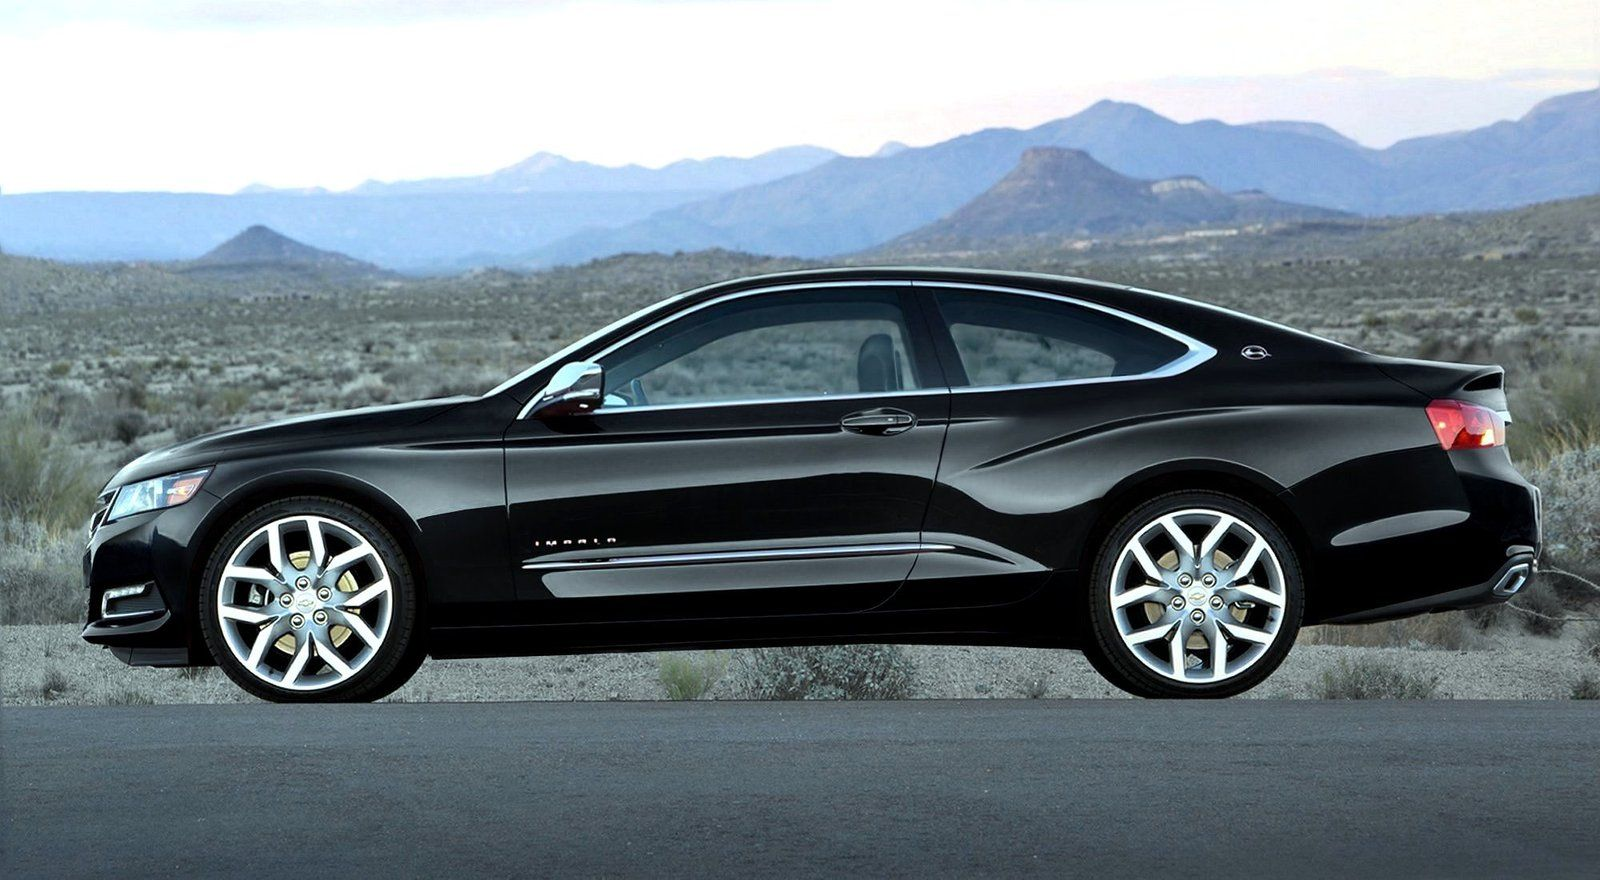 2014 chevy impala 2 door if only but they will never do